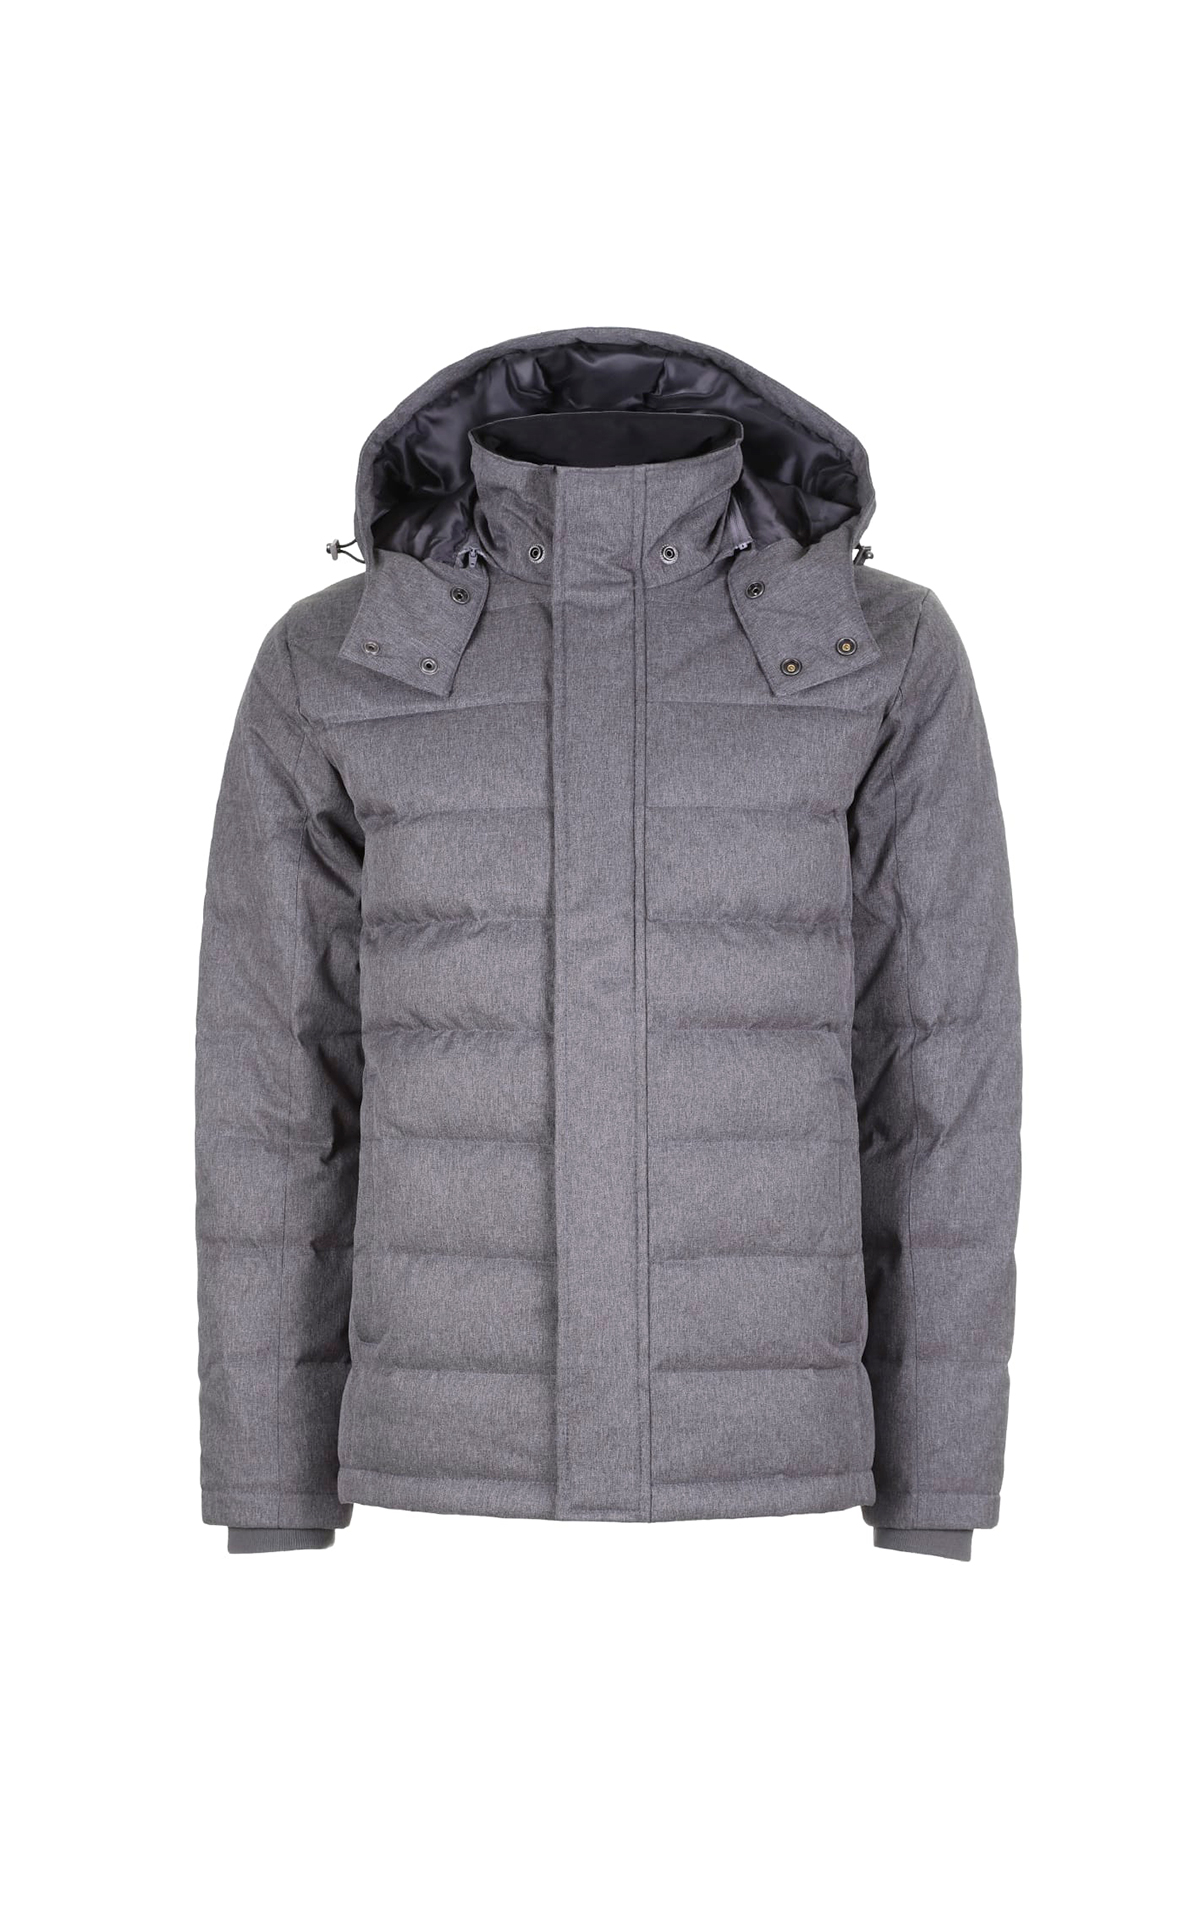 Grey puffer jacket Brooks Brothers